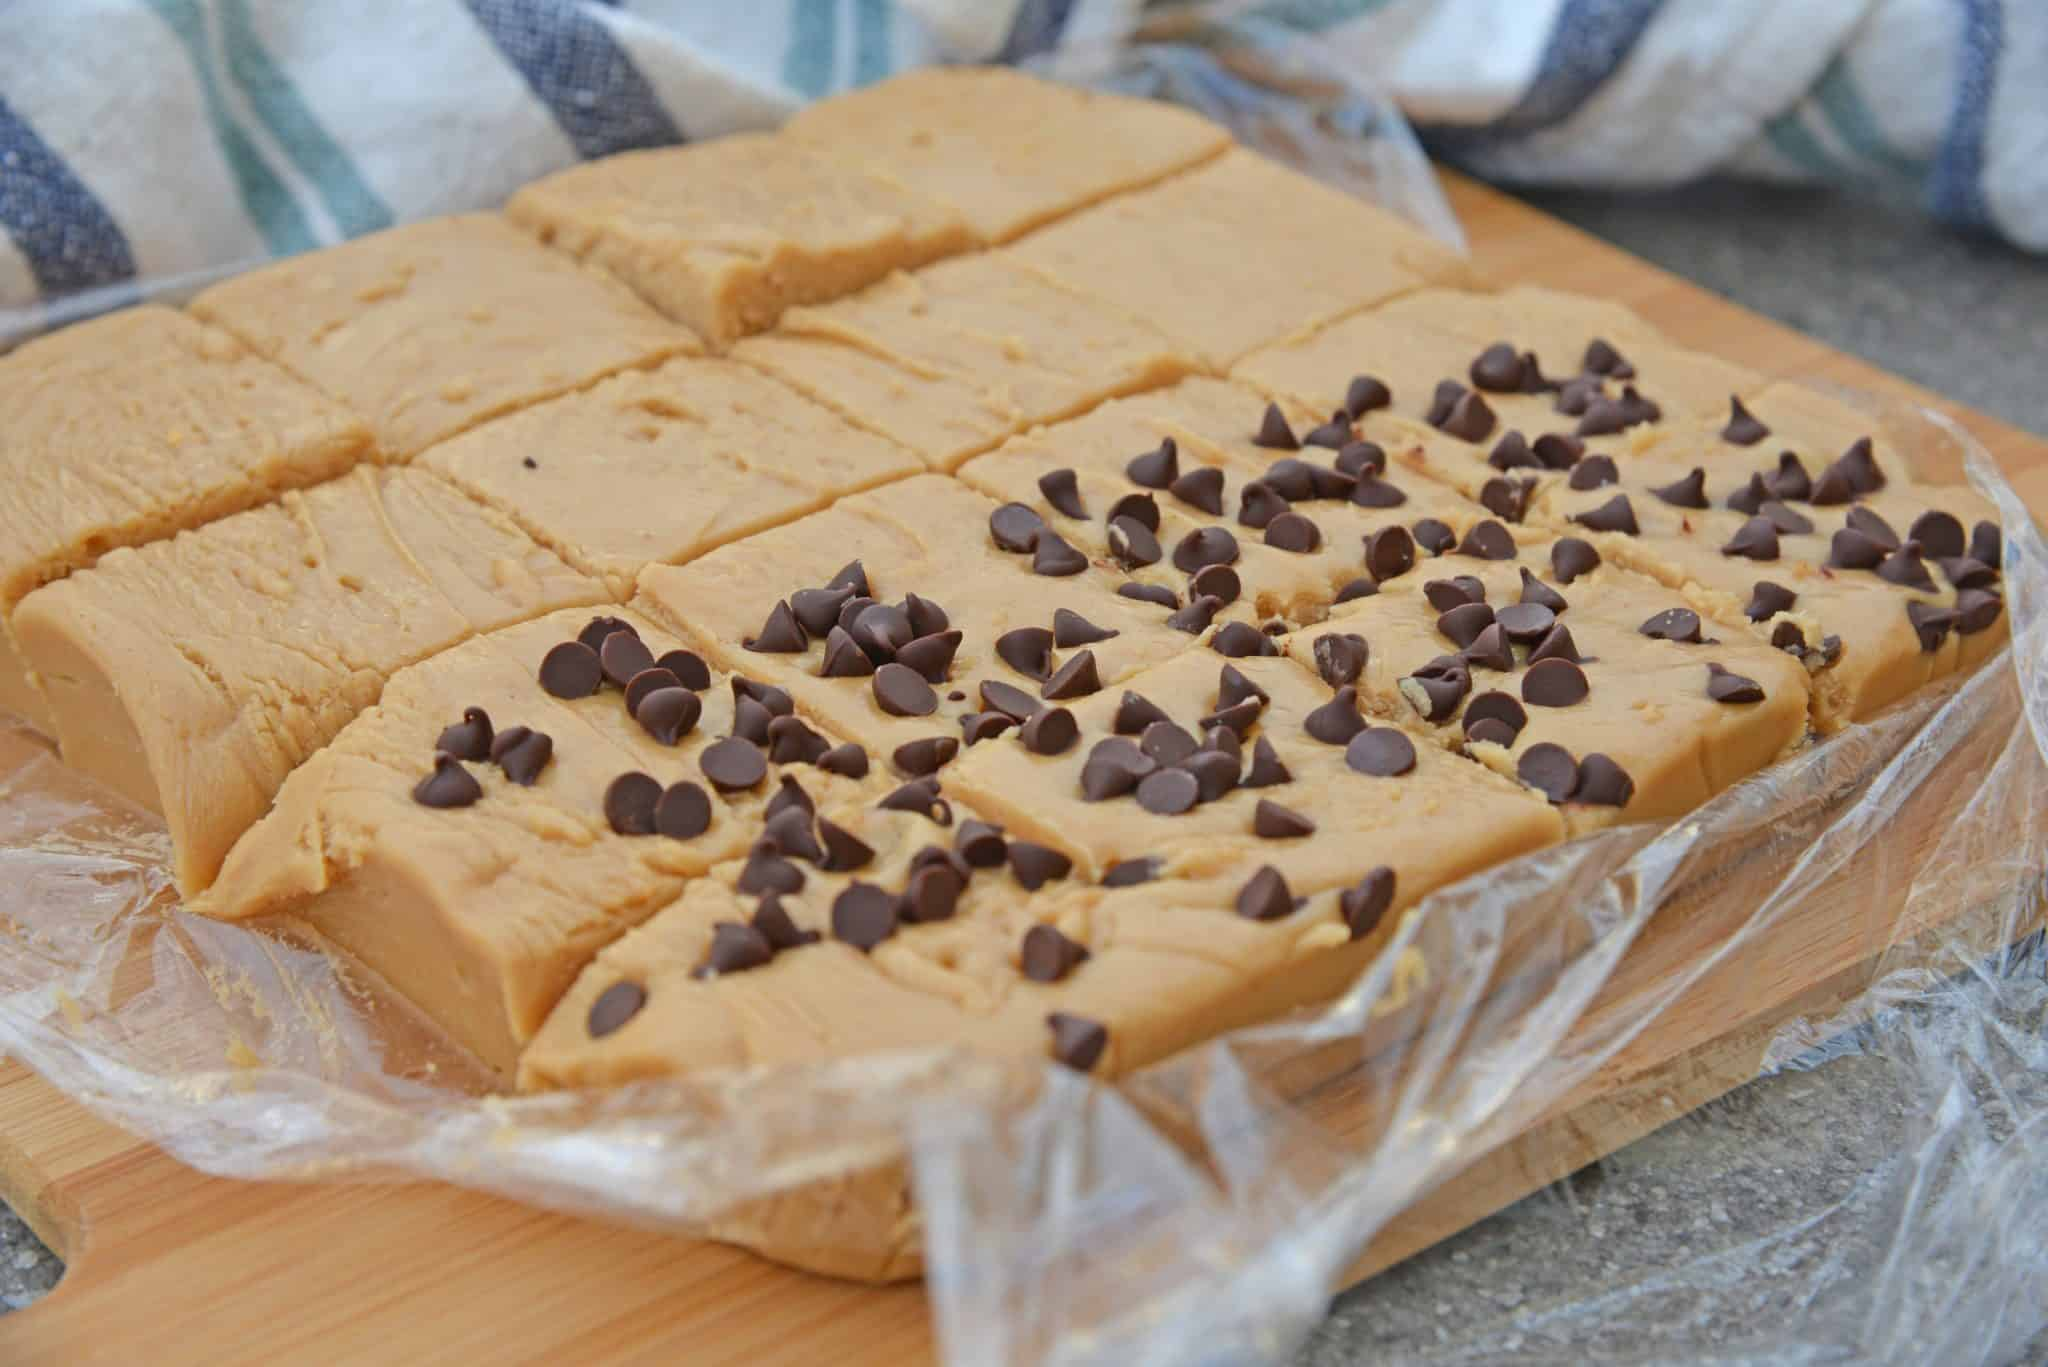 Easy Peanut Butter Fudge is rich, decadent and perfectly creamy. Simple instructions for how to make fudge in just 10 minutes!#peanutbutterfudge #easyfudge #fudge www.savoryexperiments.com